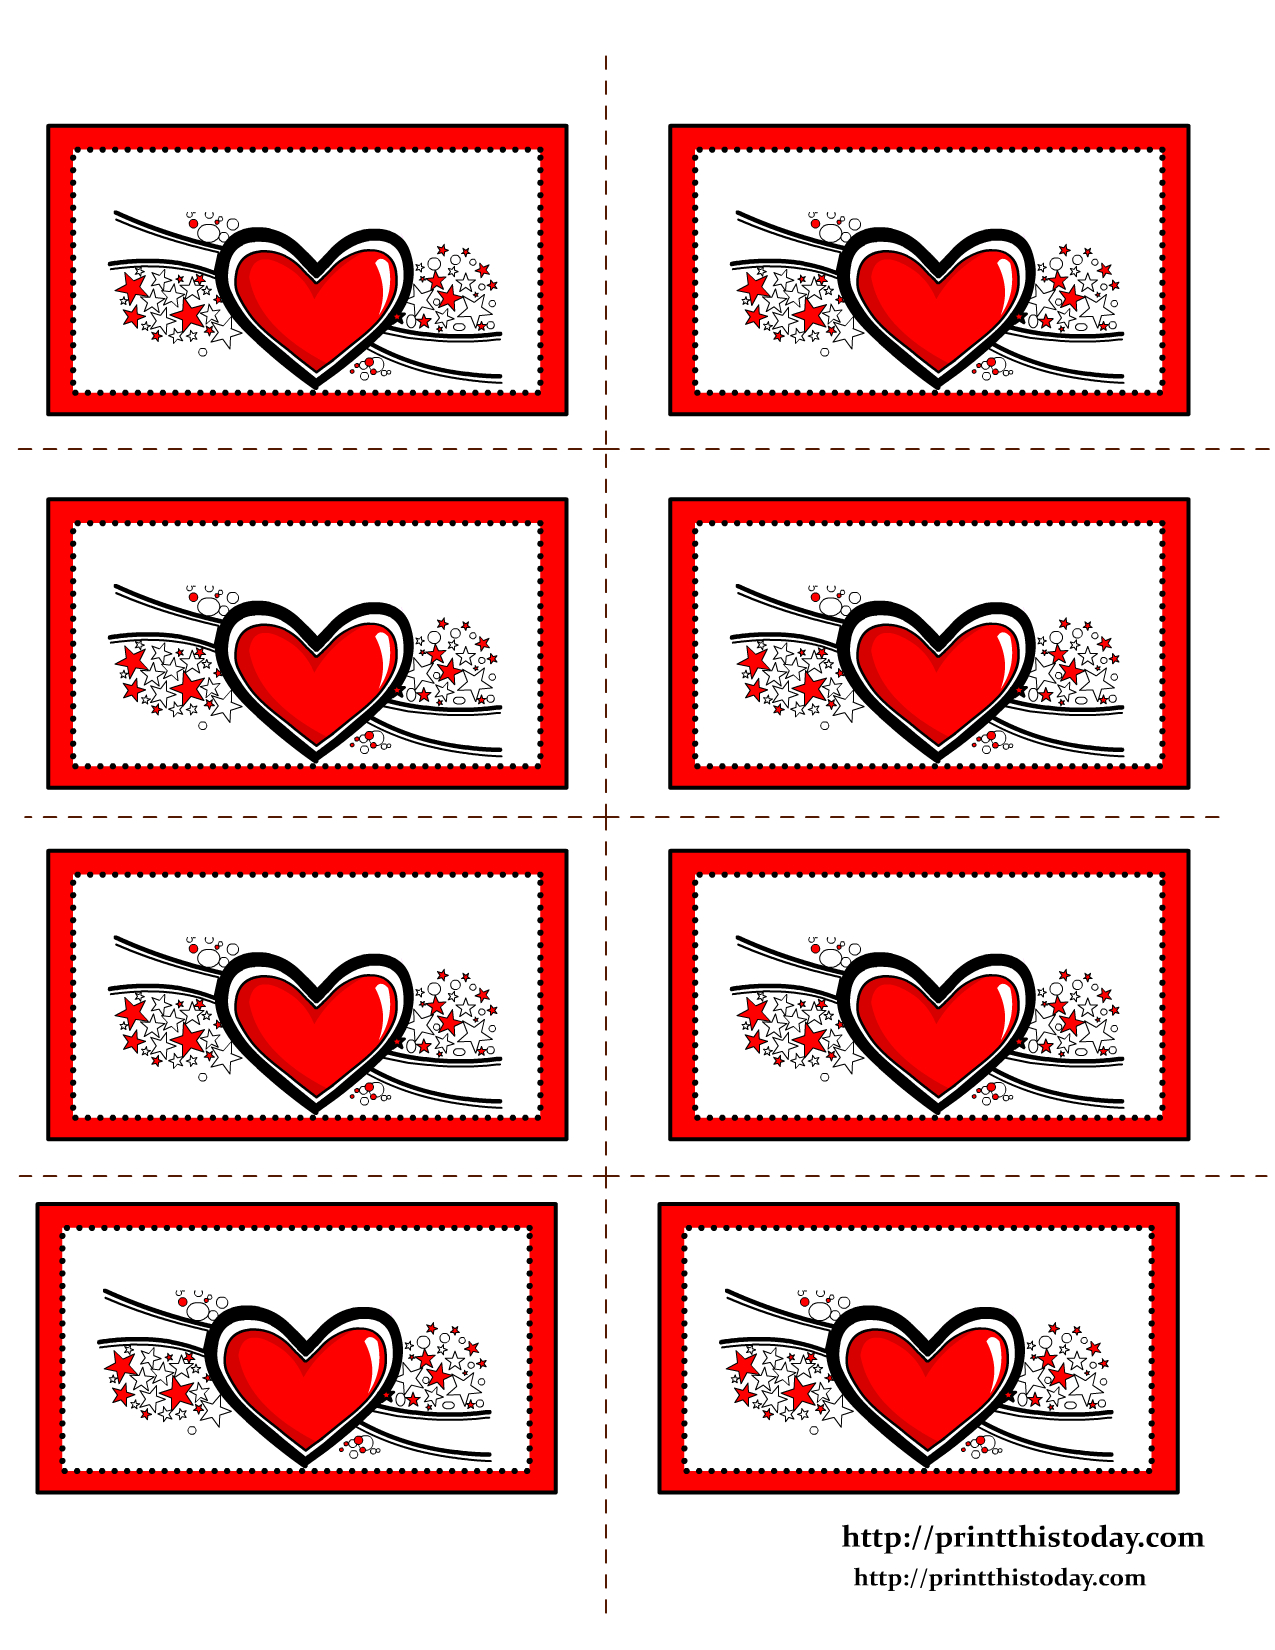 Free Printable Hearts Labels | Misc This&that | Pinterest | Free - Free Printable Heart Labels